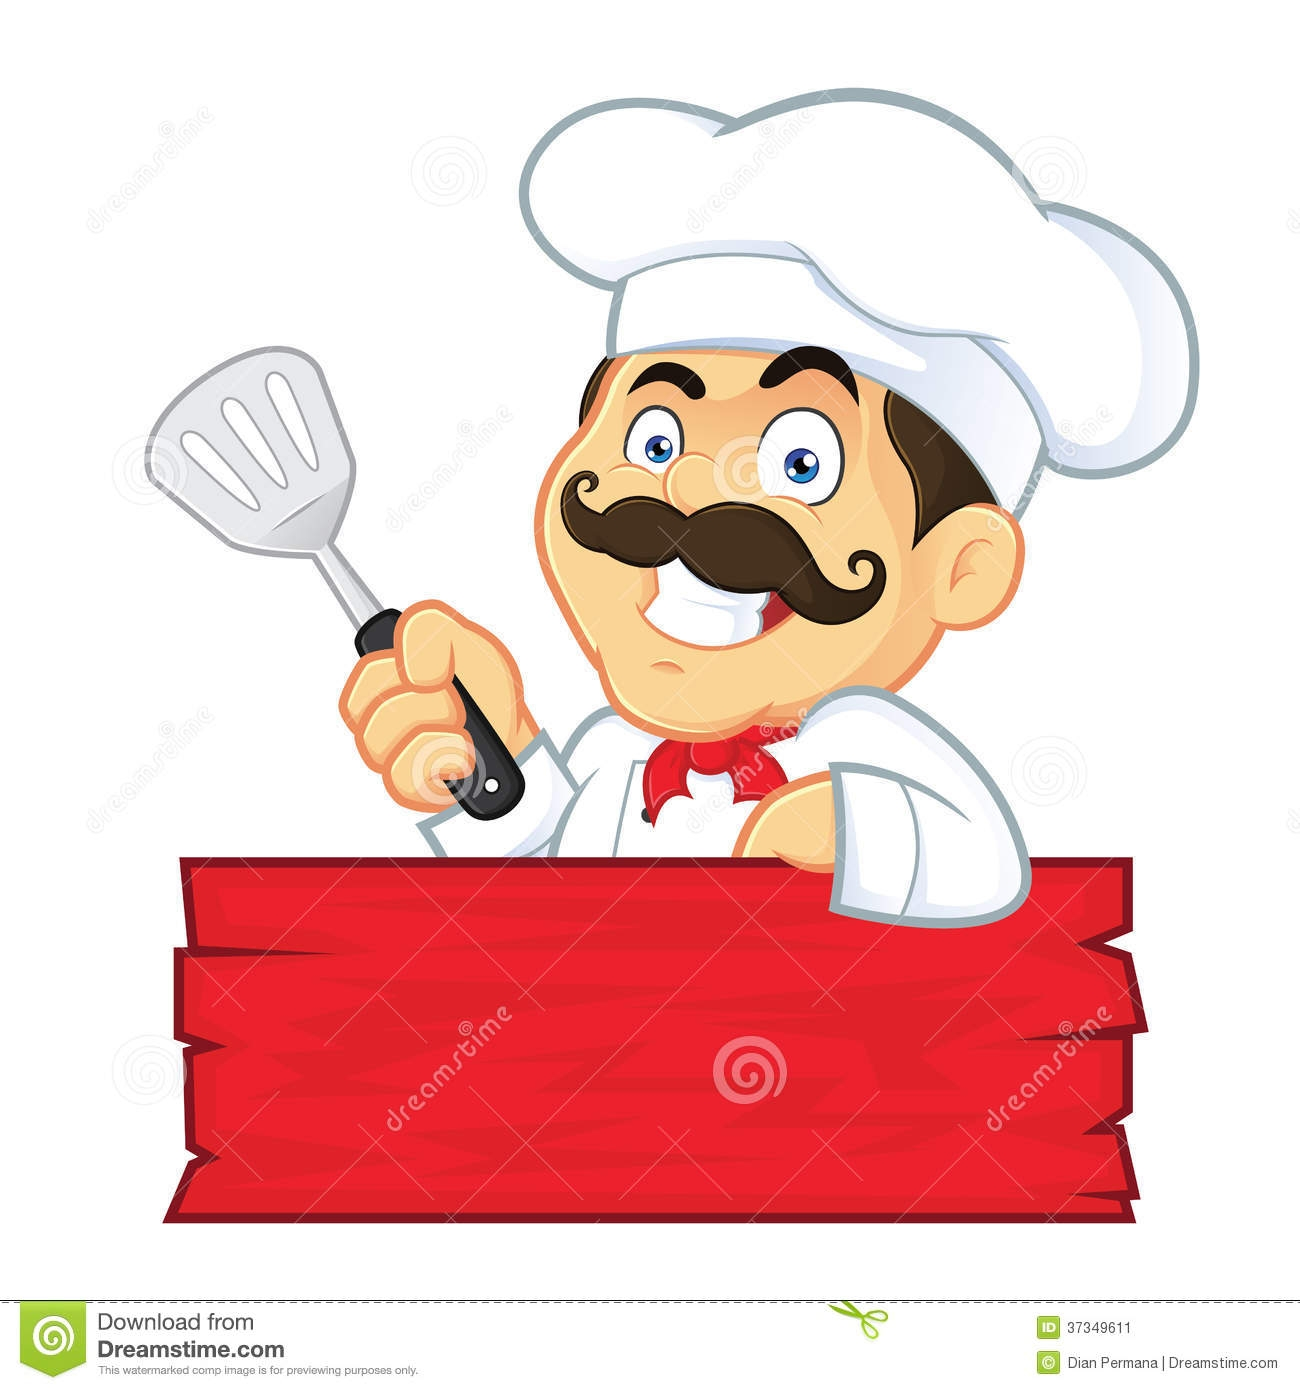 Chef clipart images.